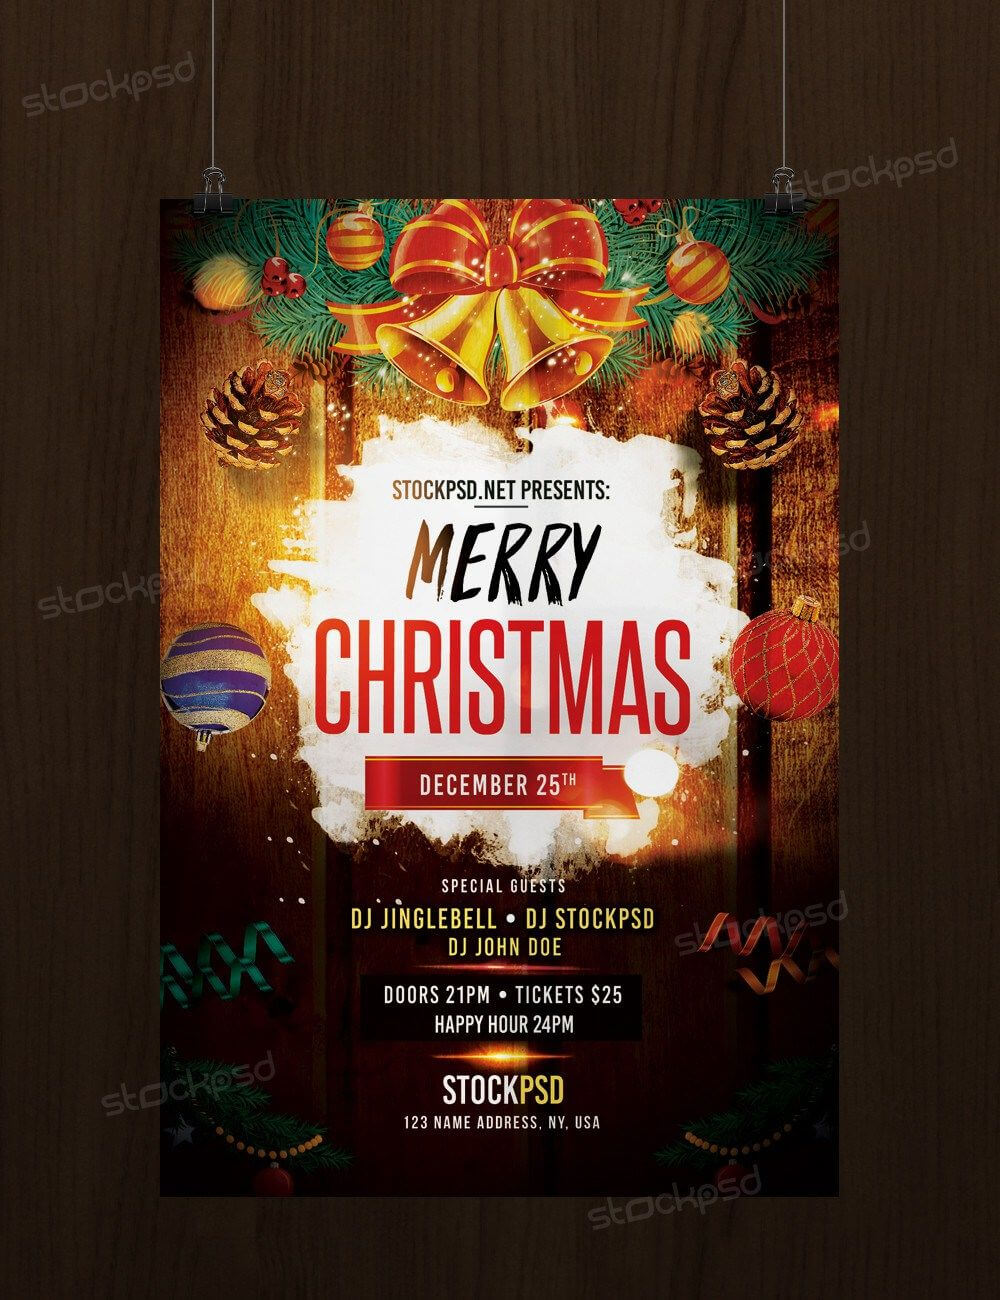 Download Merry Christmas – Free Psd Flyer Template | Free throughout Christmas Brochure Templates Free